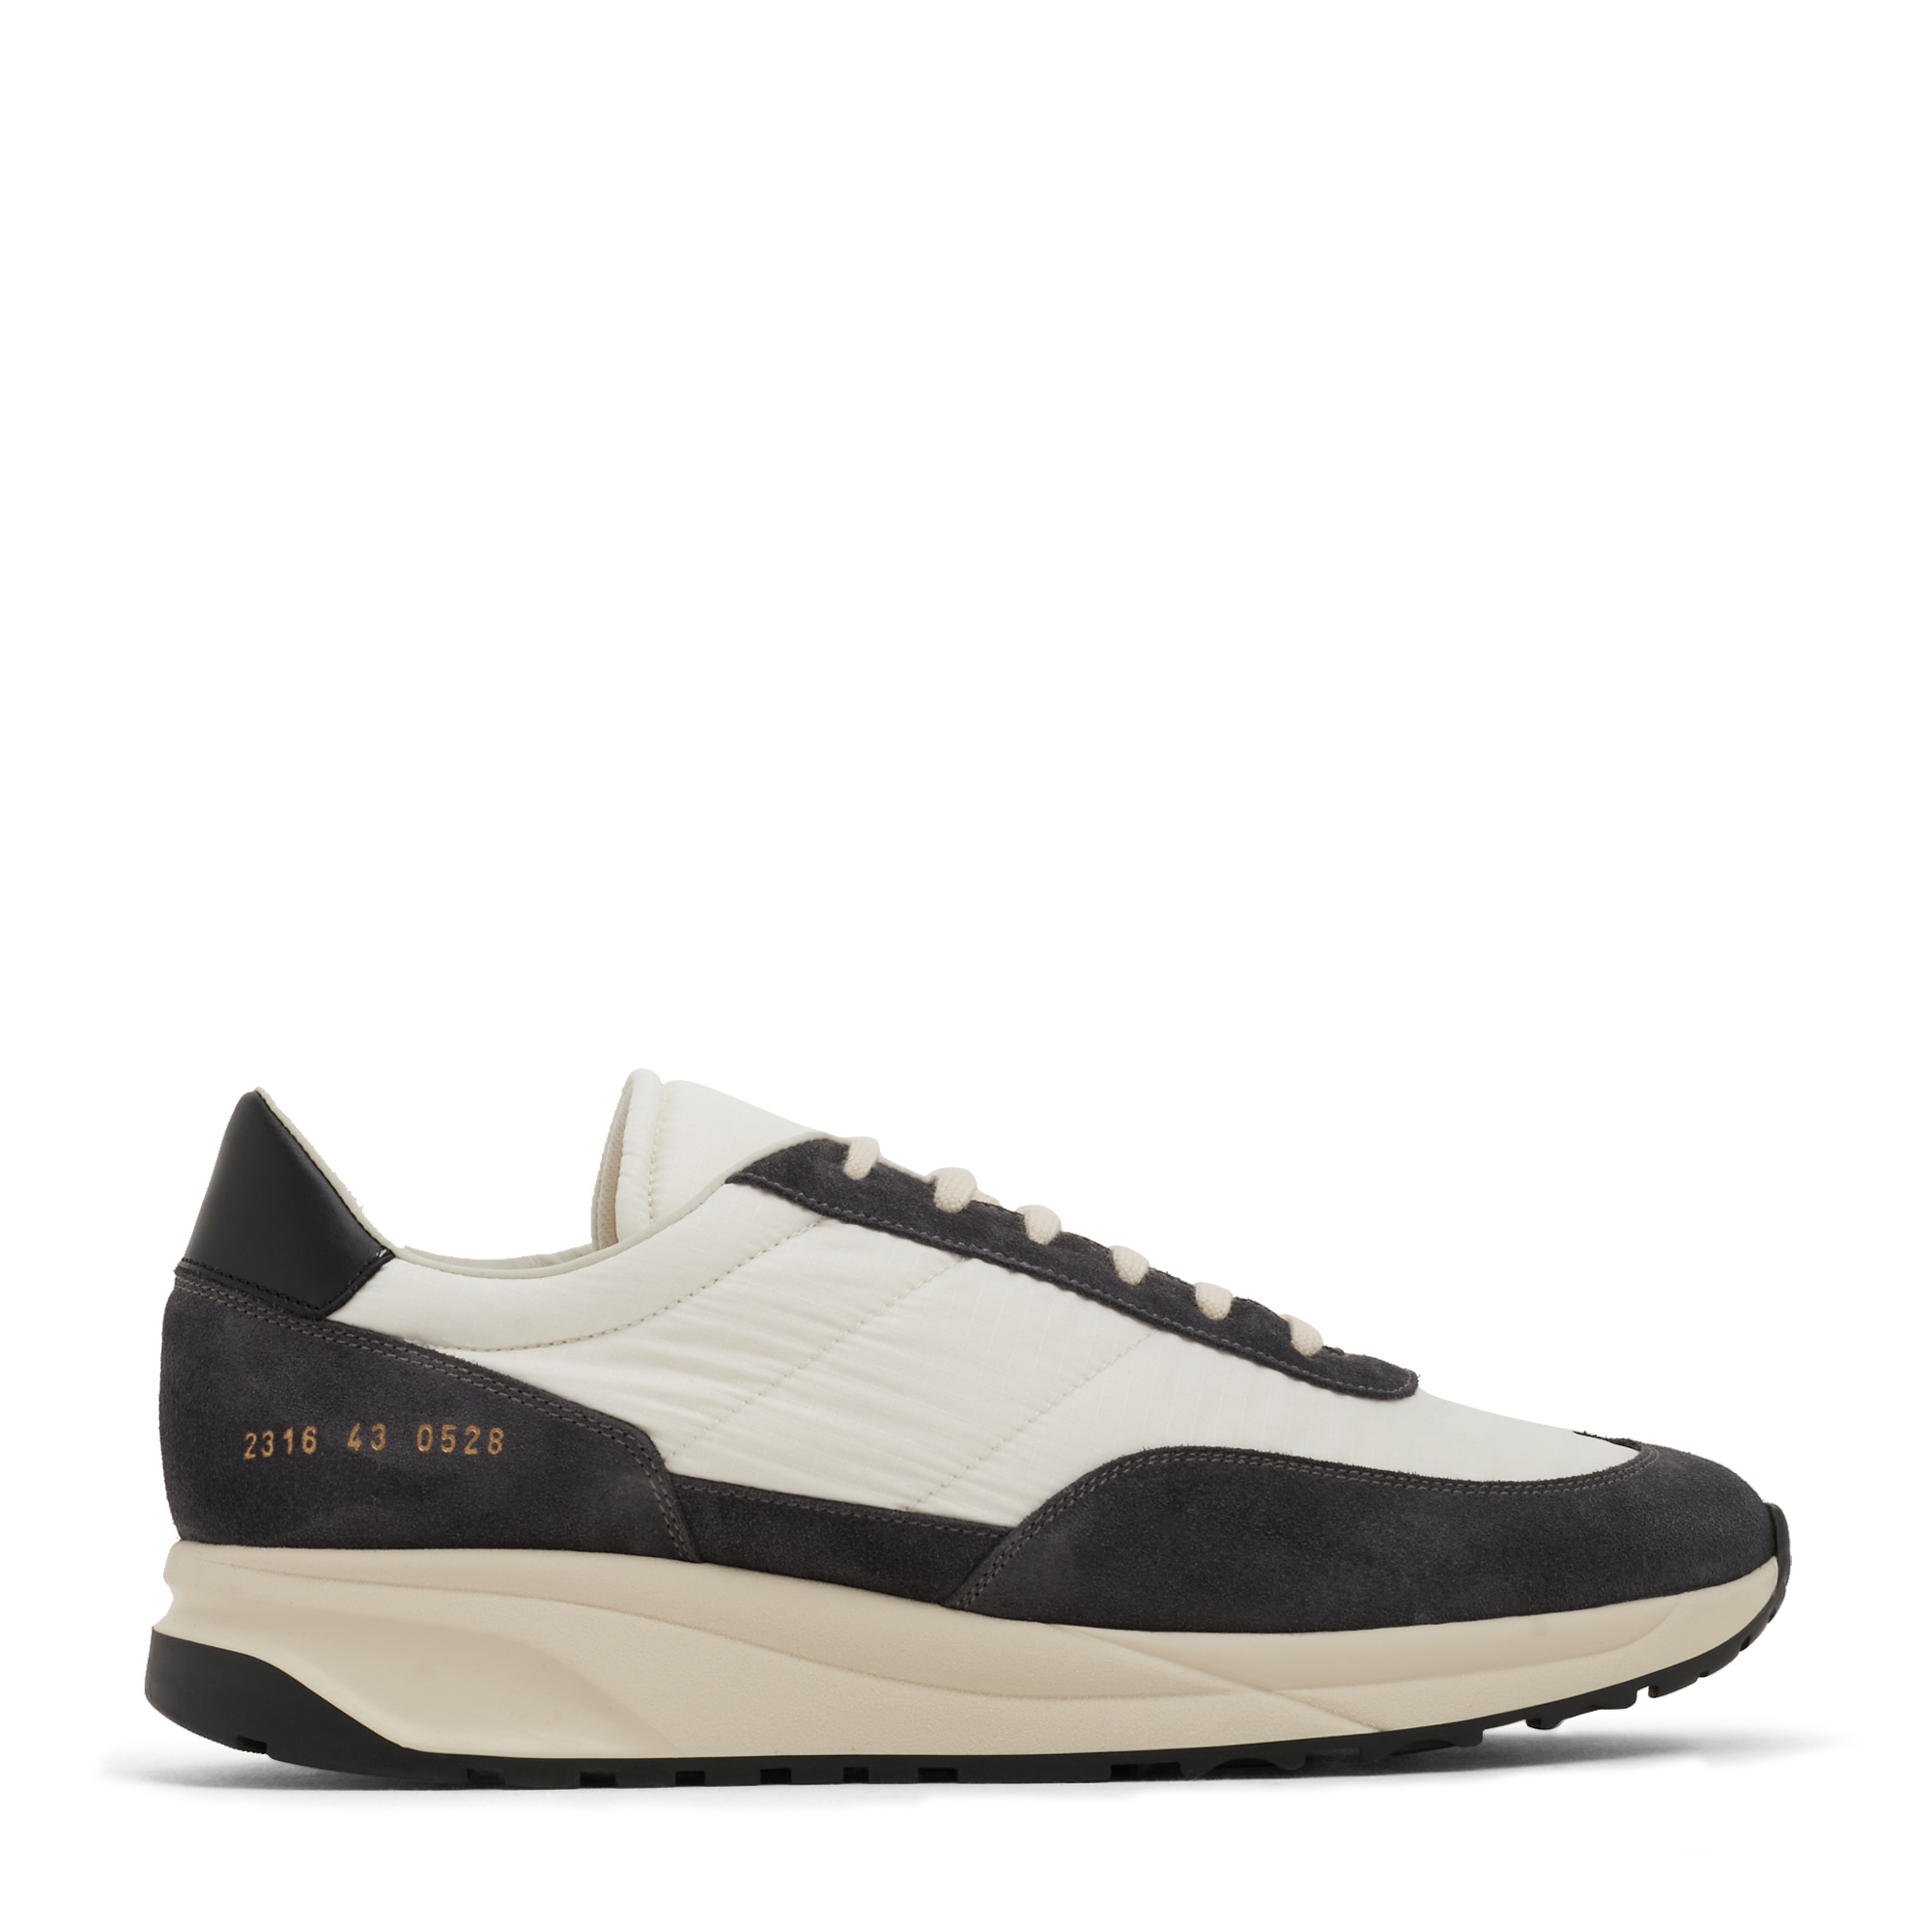 Track Classic sneakers